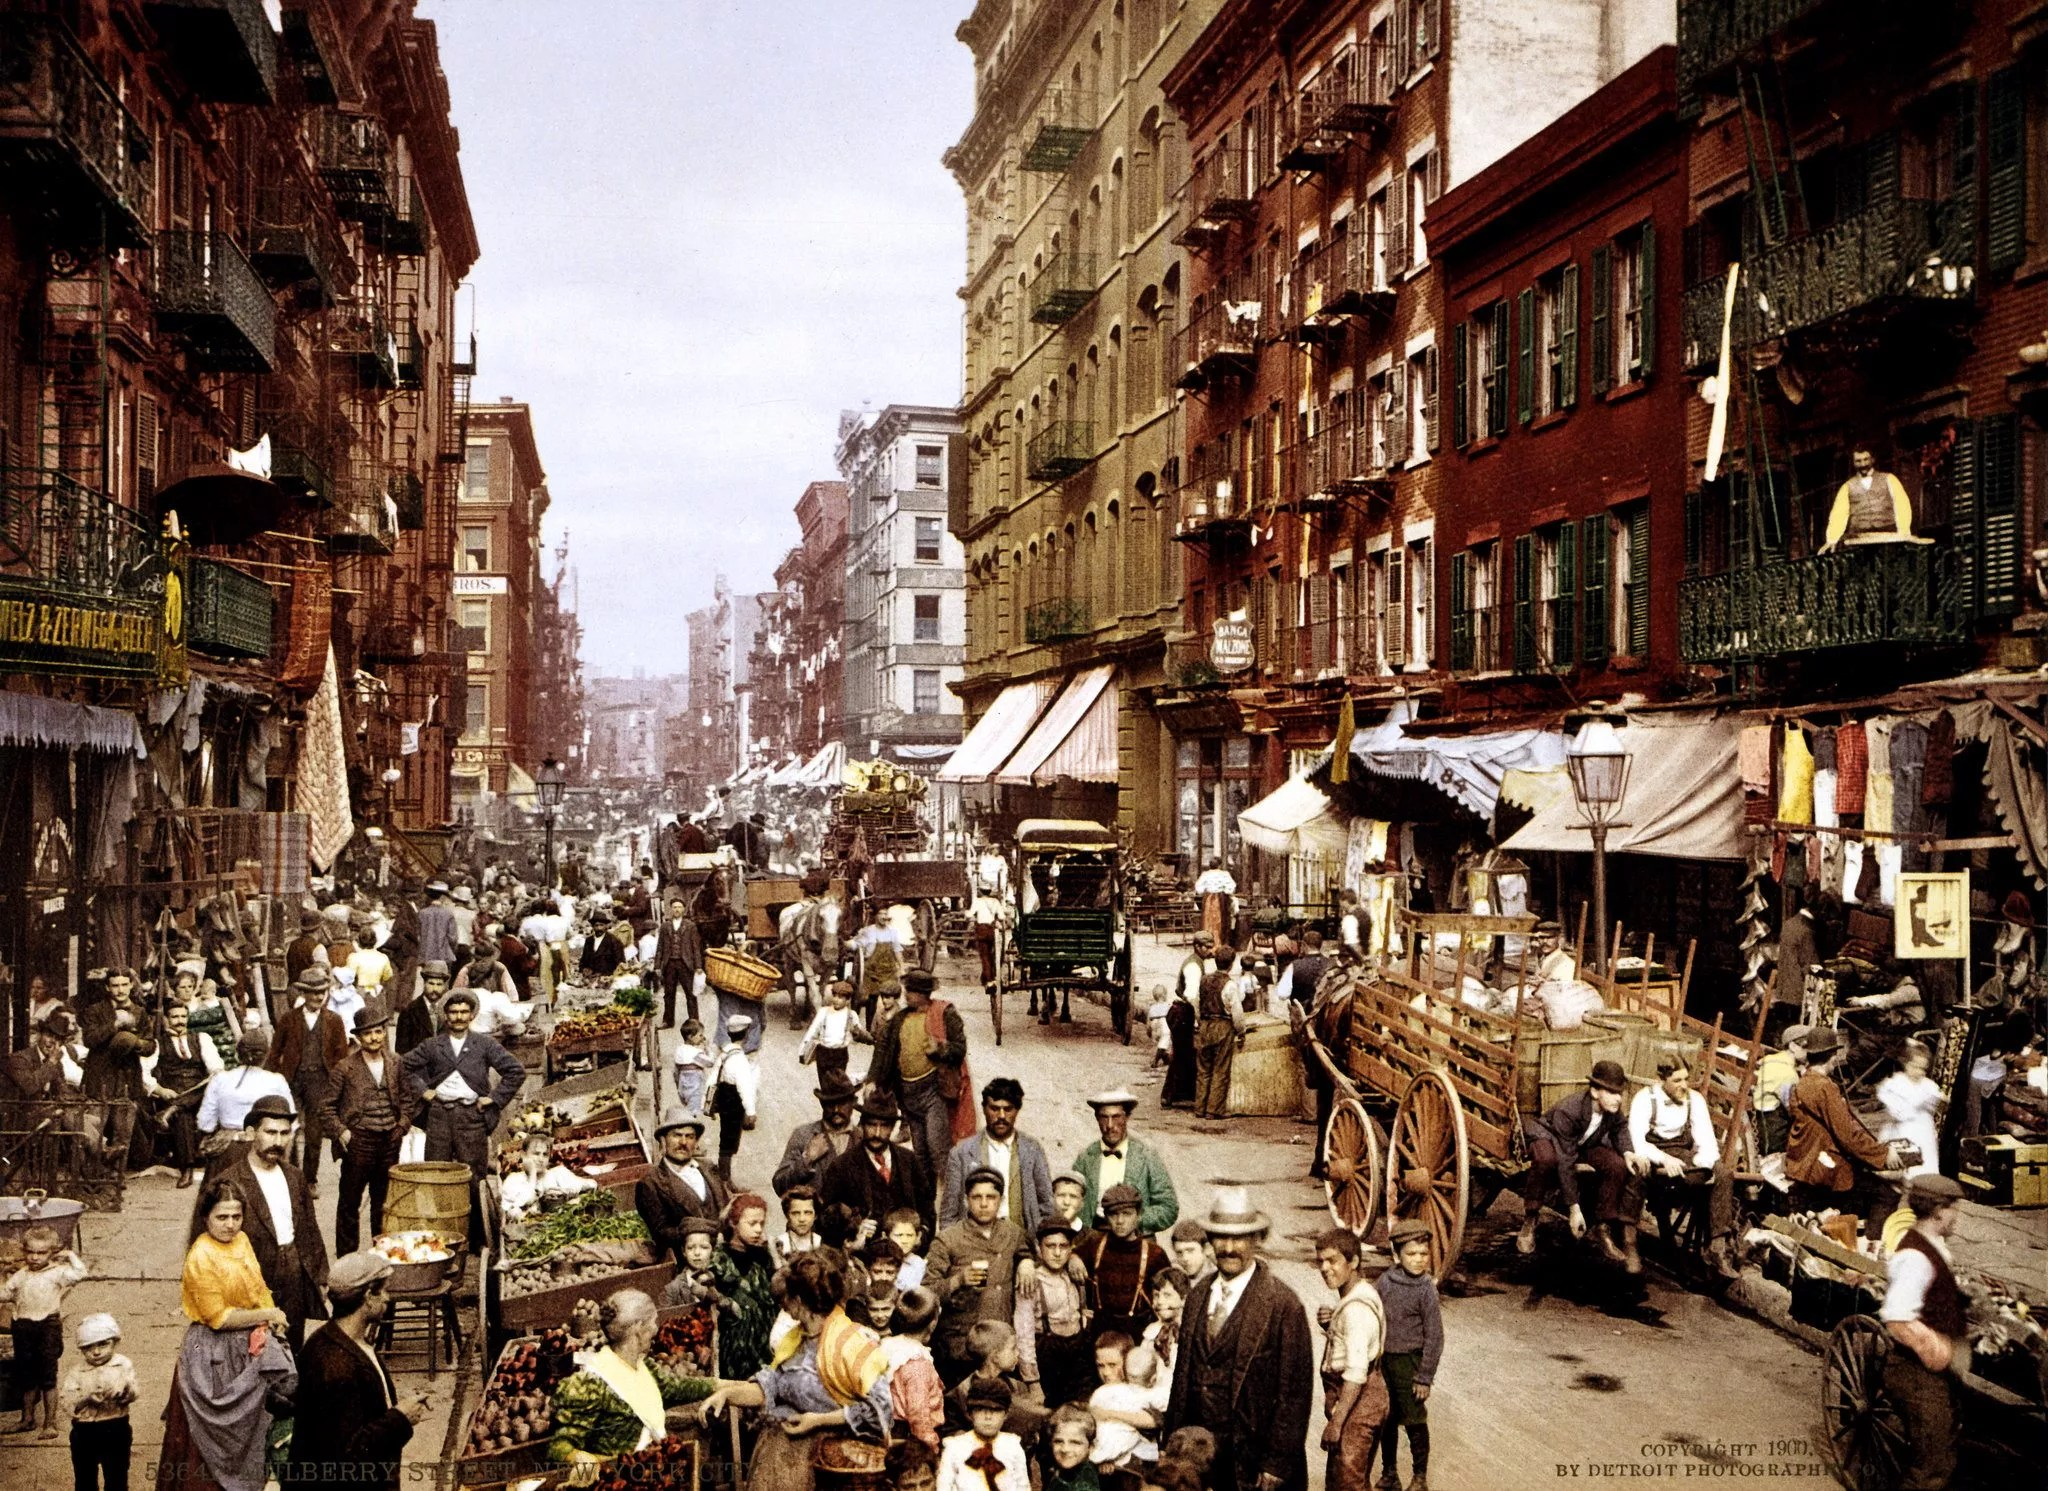 Mulberry Street Market, Little Italy, New York City, 1900 [Credit: Photocrom print by Detroit Photographic Co.]